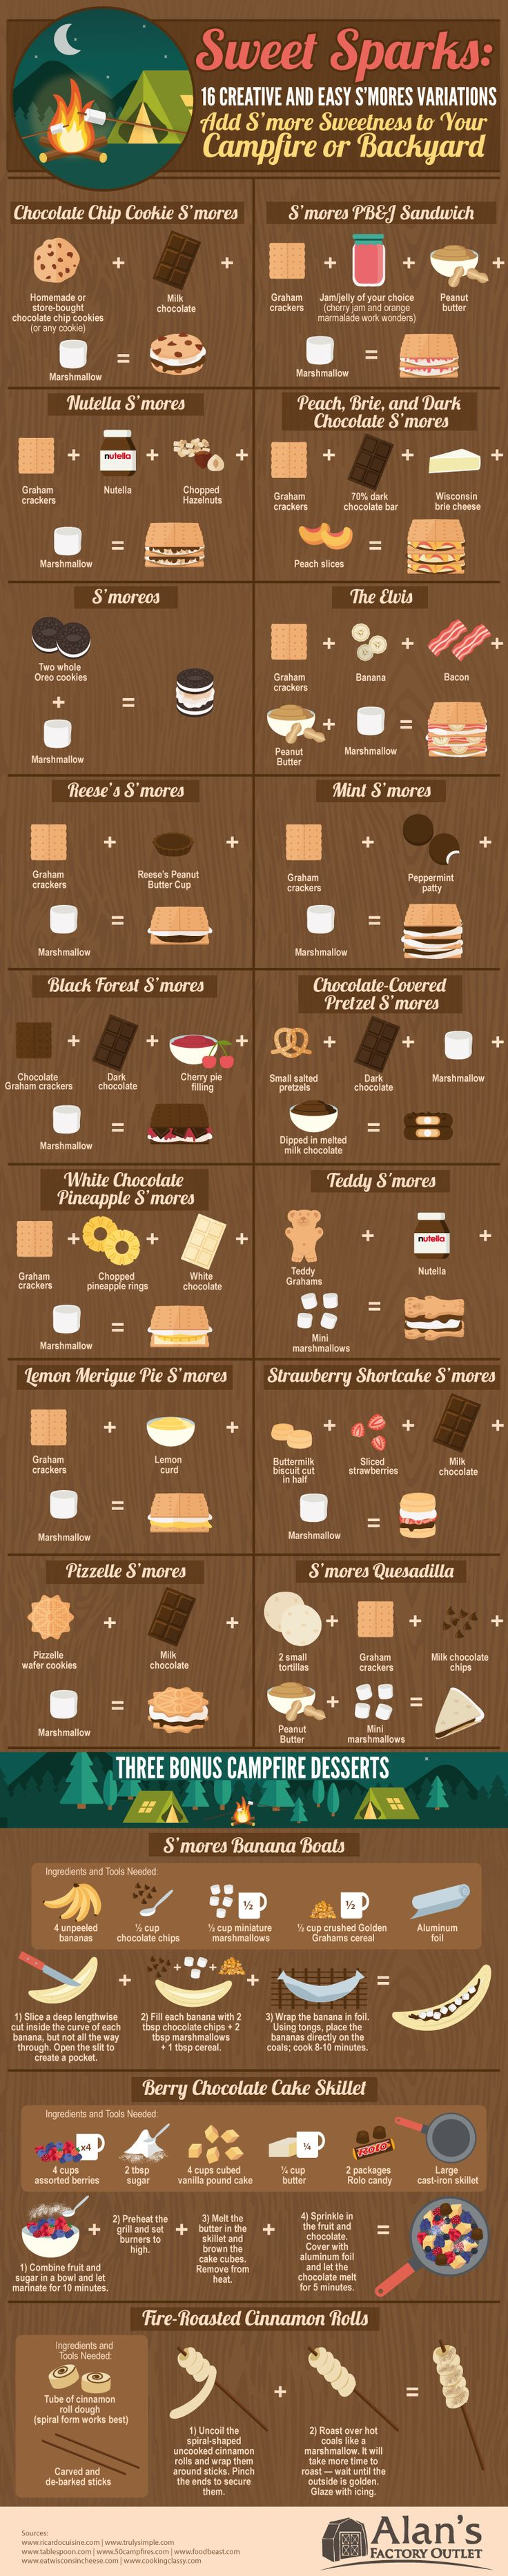 Sweet Sparks: 16 Creative and Easy S'Mores Variations perfect for melting over an open fire with friends & family...x